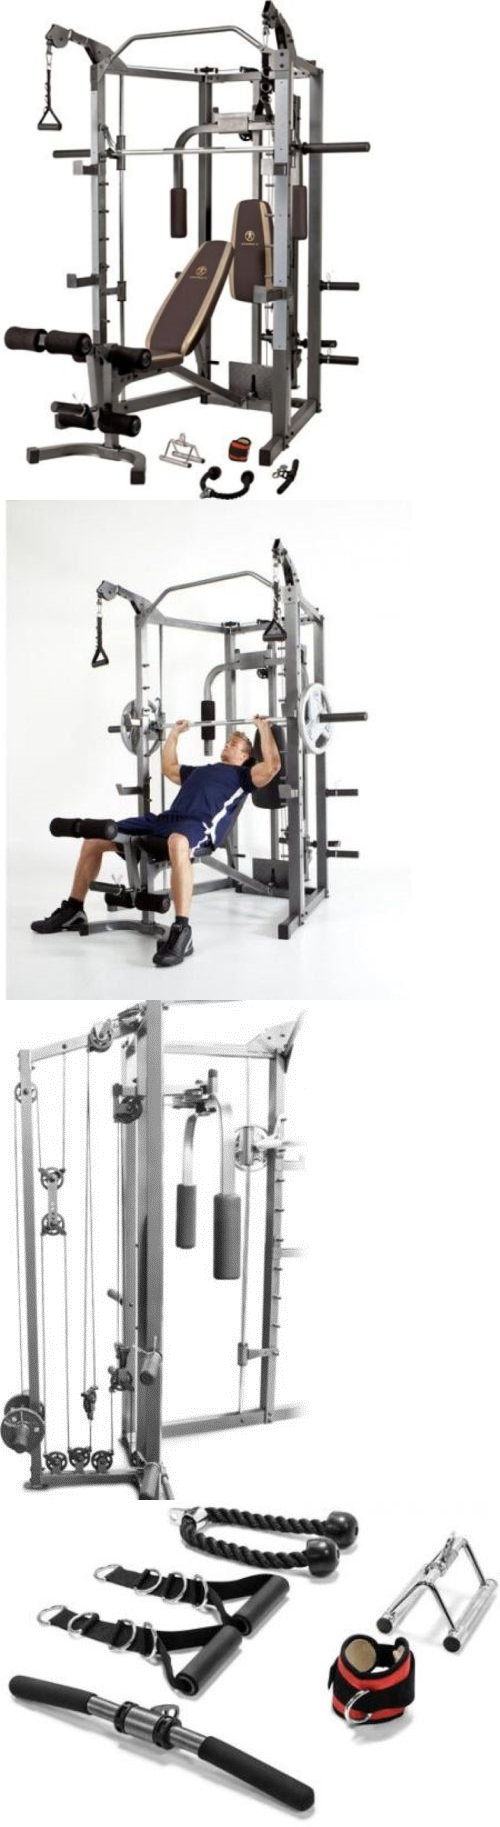 Home Gyms 158923: Gym Home Exercise Machine Weight Workout Equipment ...